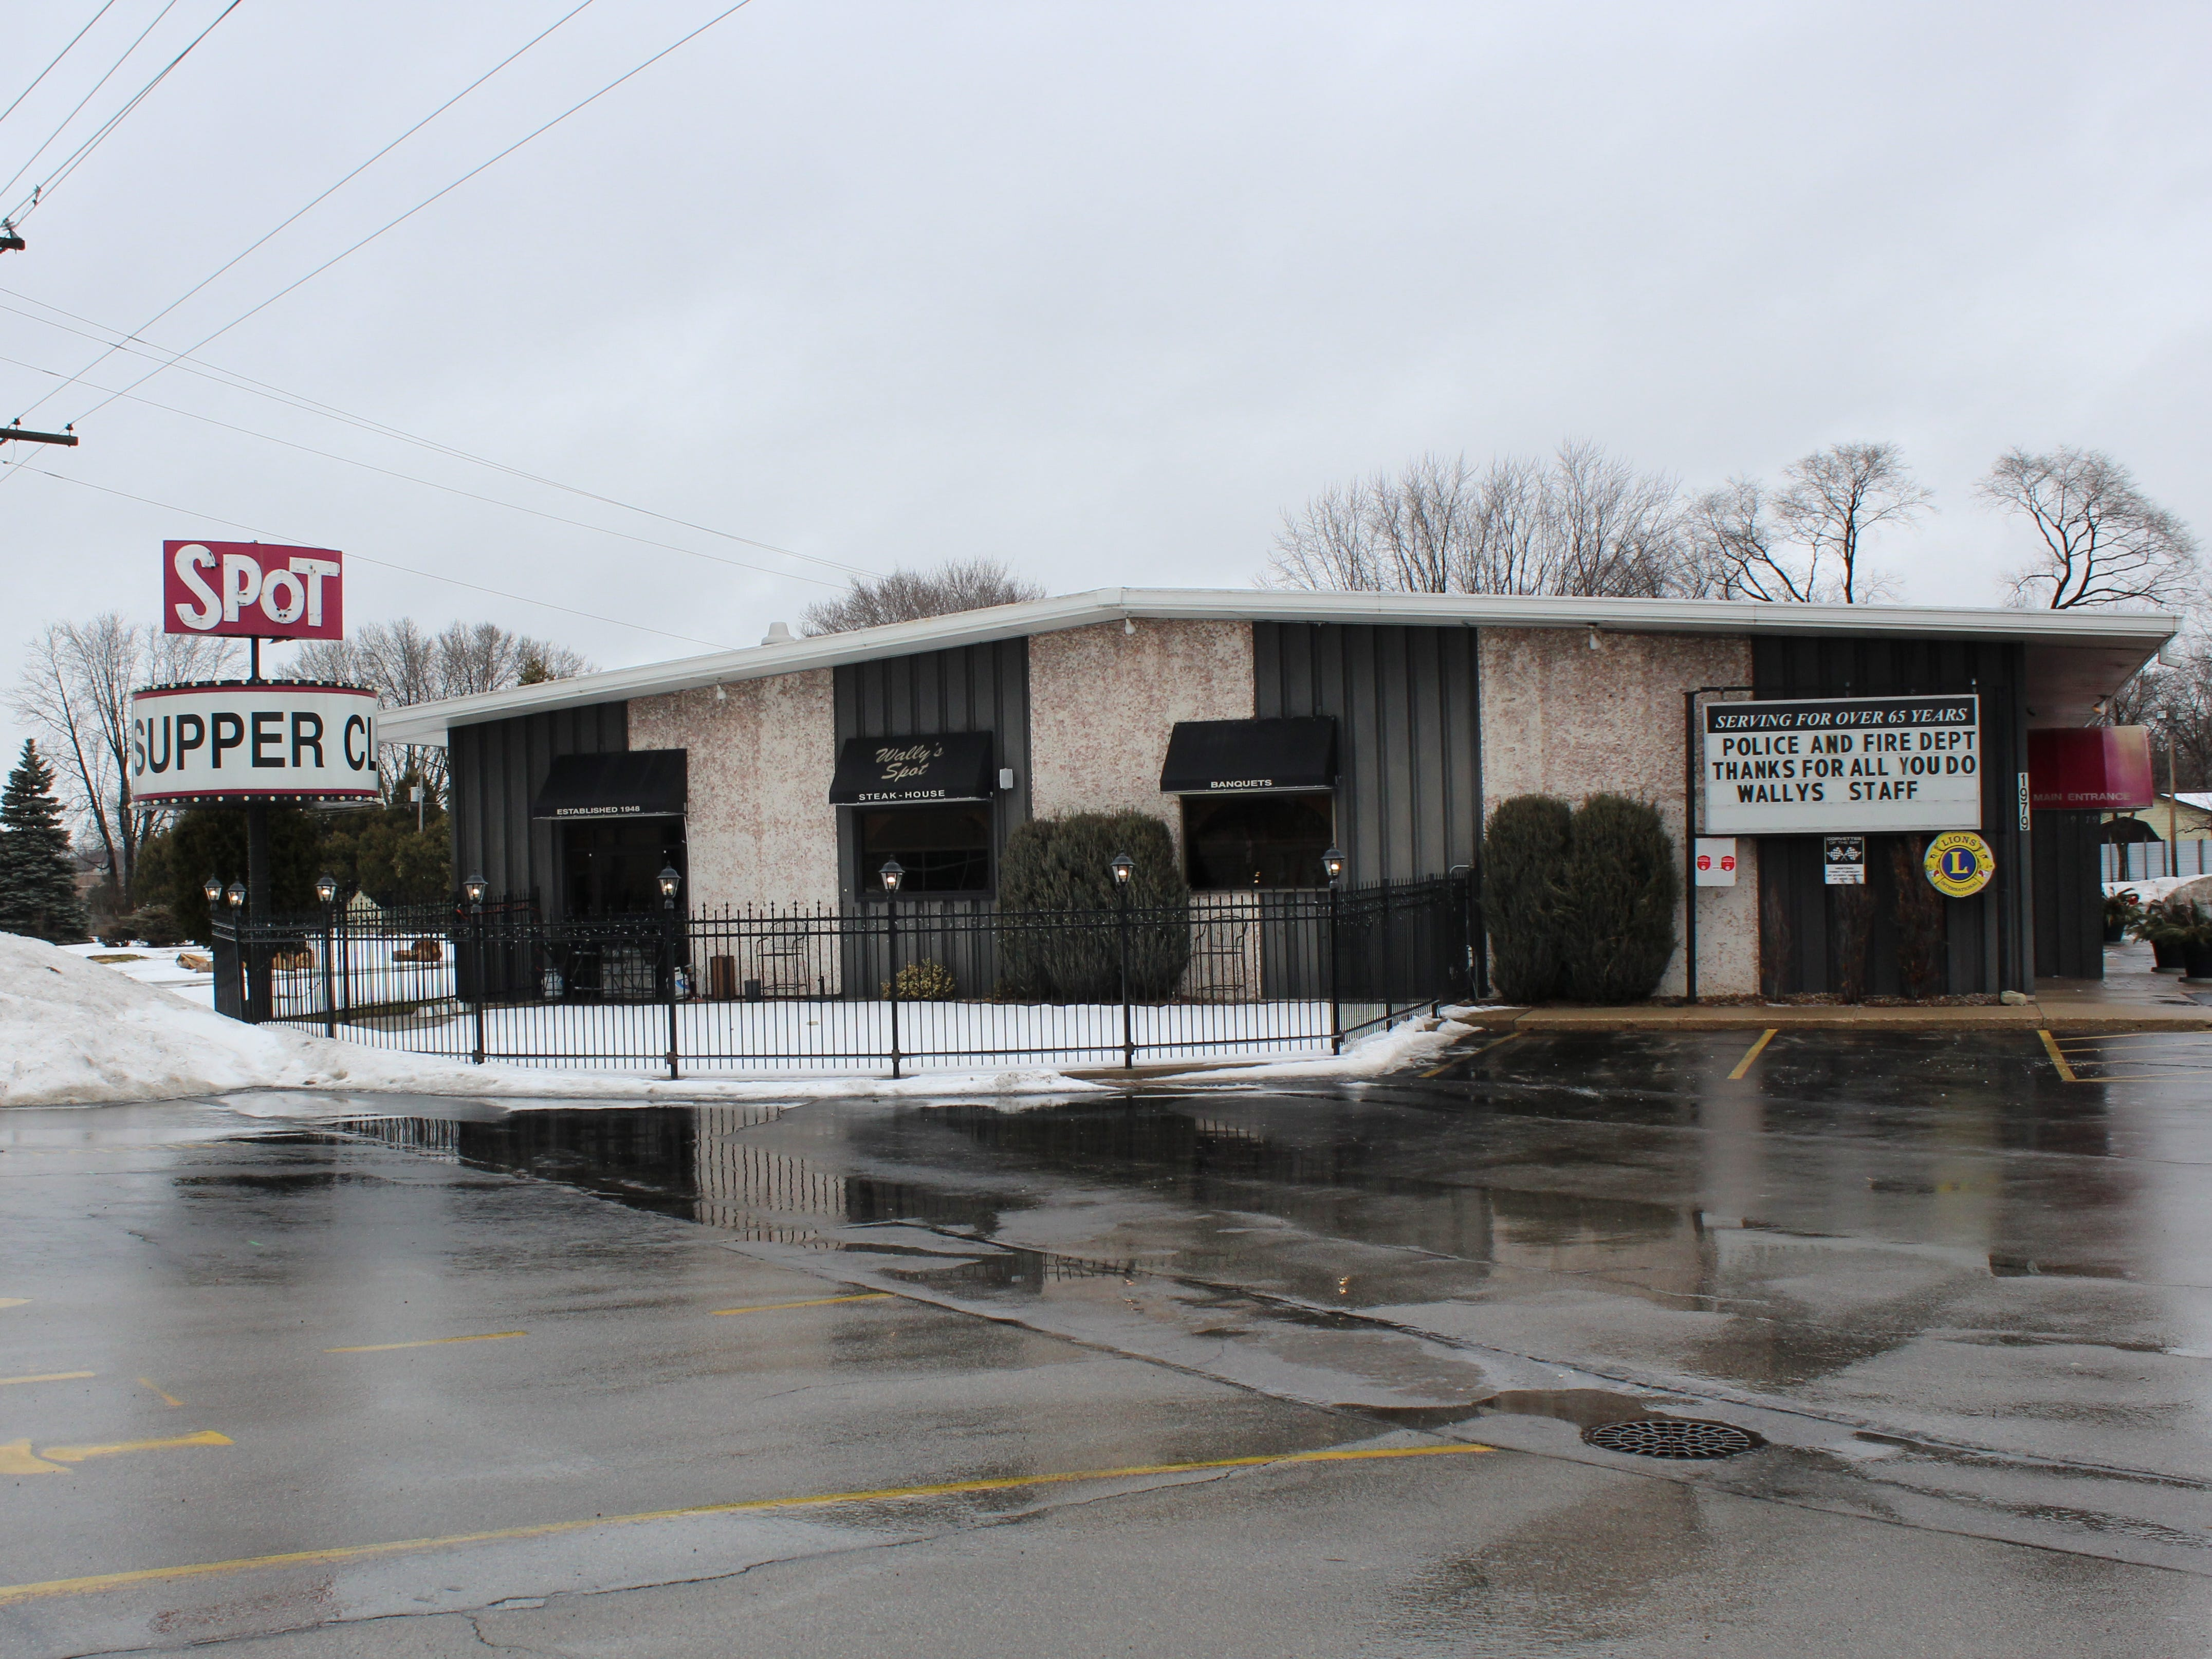 Wally's Spot Supper Club, 1979 Main St., Green Bay, is known for its food and easily identifiable by its iconic sign.